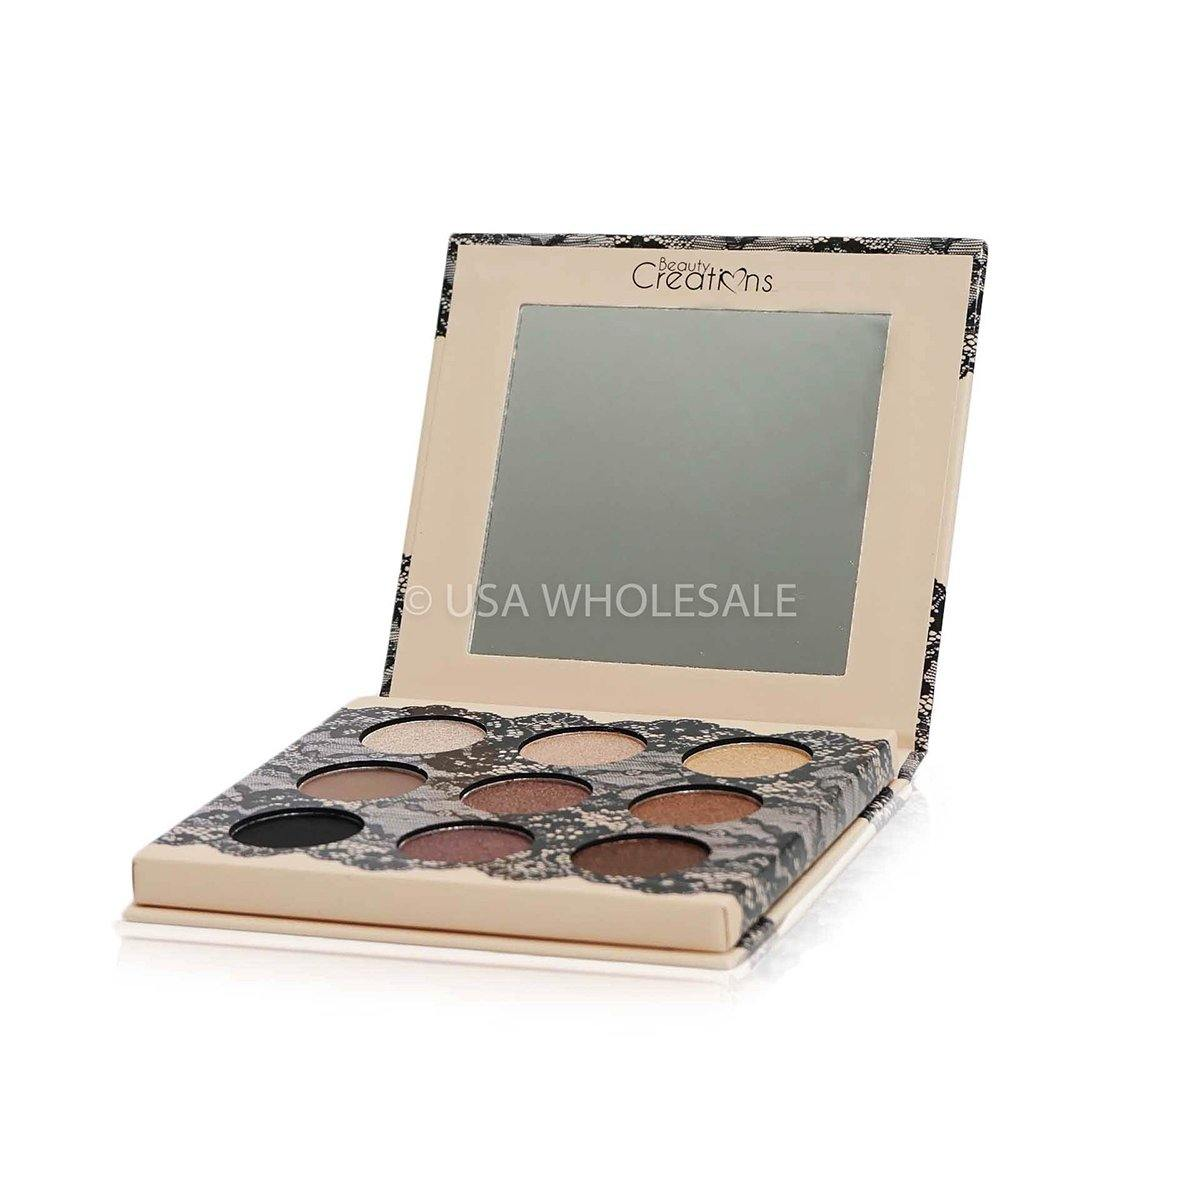 BEAUTY CREATIONS | Boudoir Shadows Eyeshadow Palette (9 Colors X Case of 12)